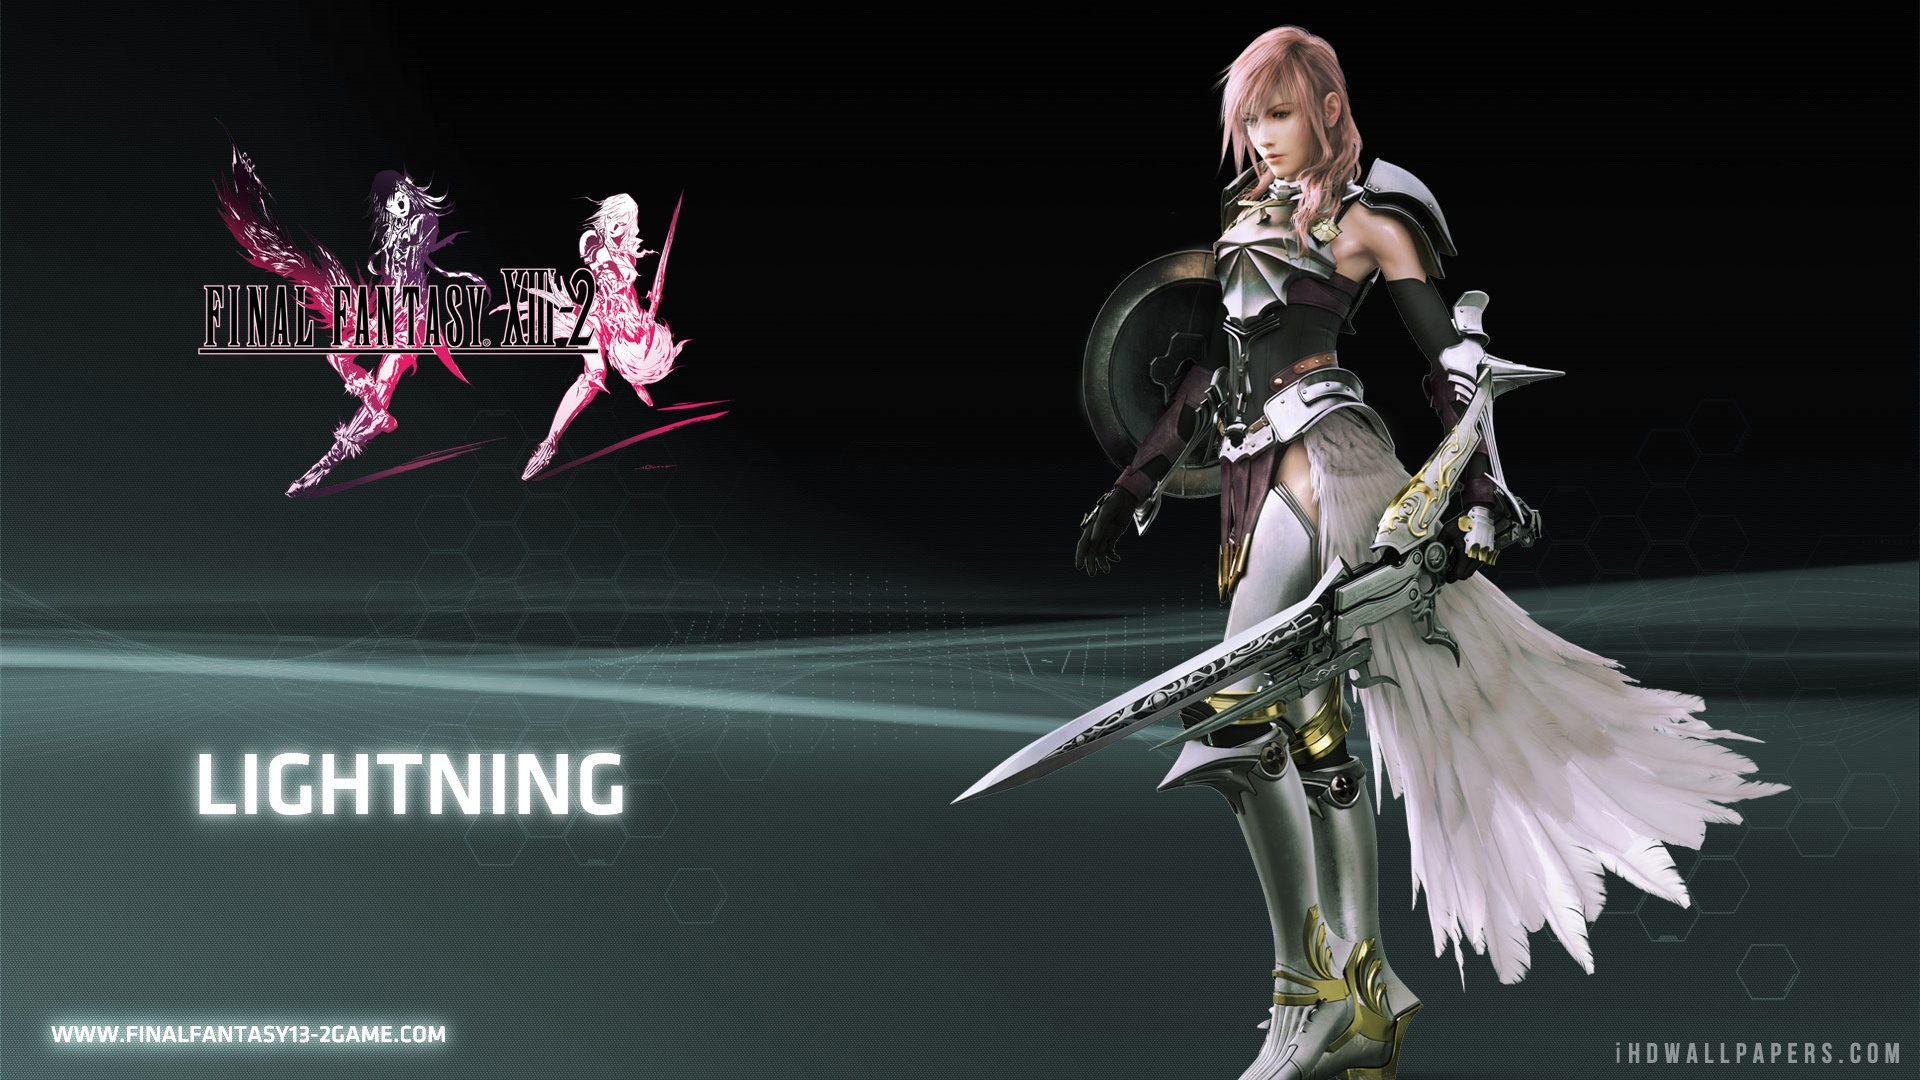 Lightning in Final Fantasy HD Wallpaper   iHD Wallpapers 1920x1080